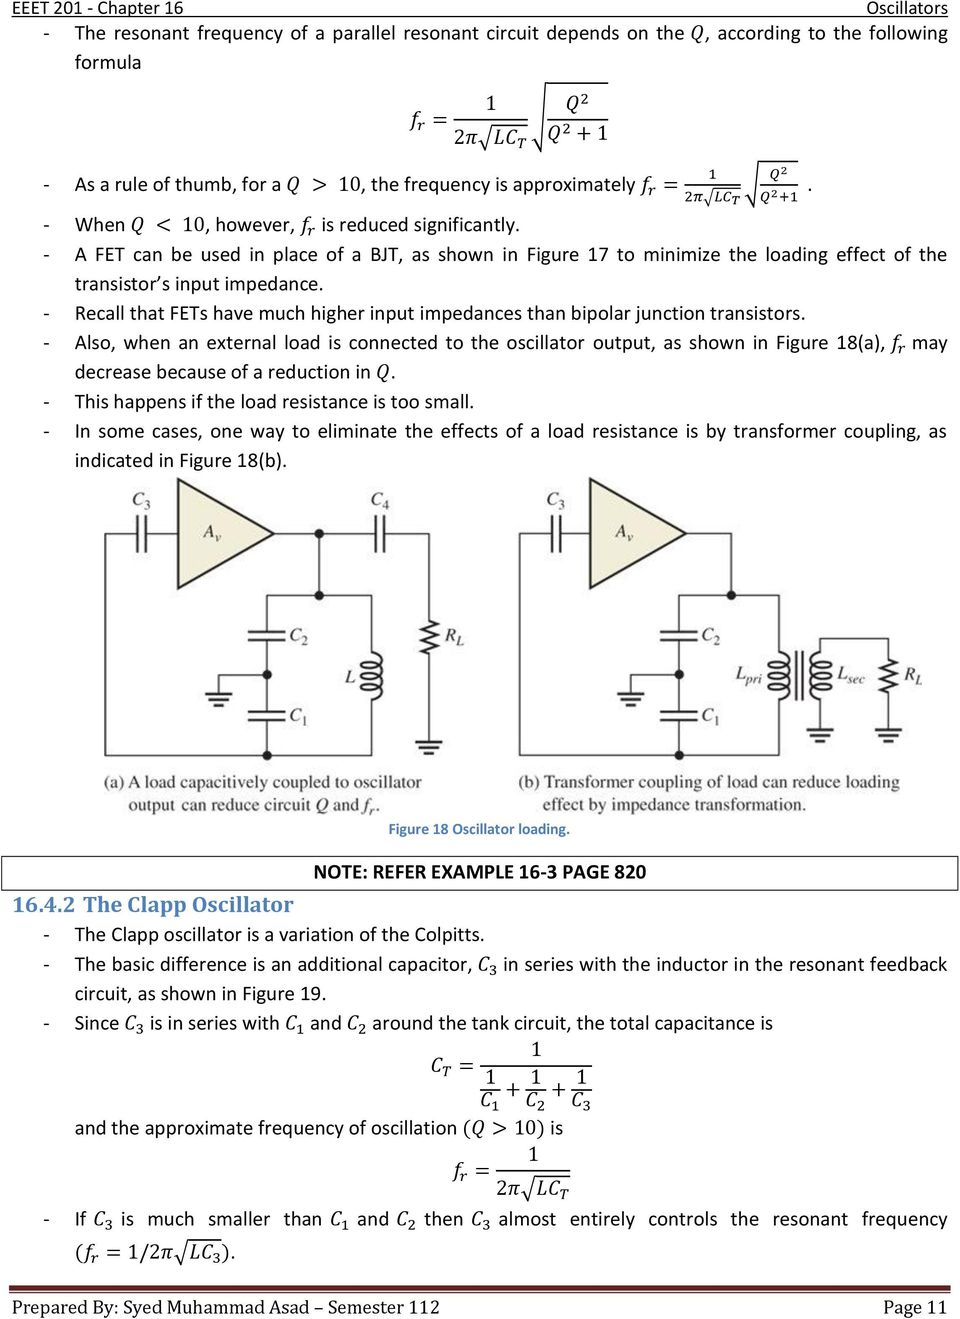 - Recall that FETs have much higher input impedances than bipolar junction transistors.